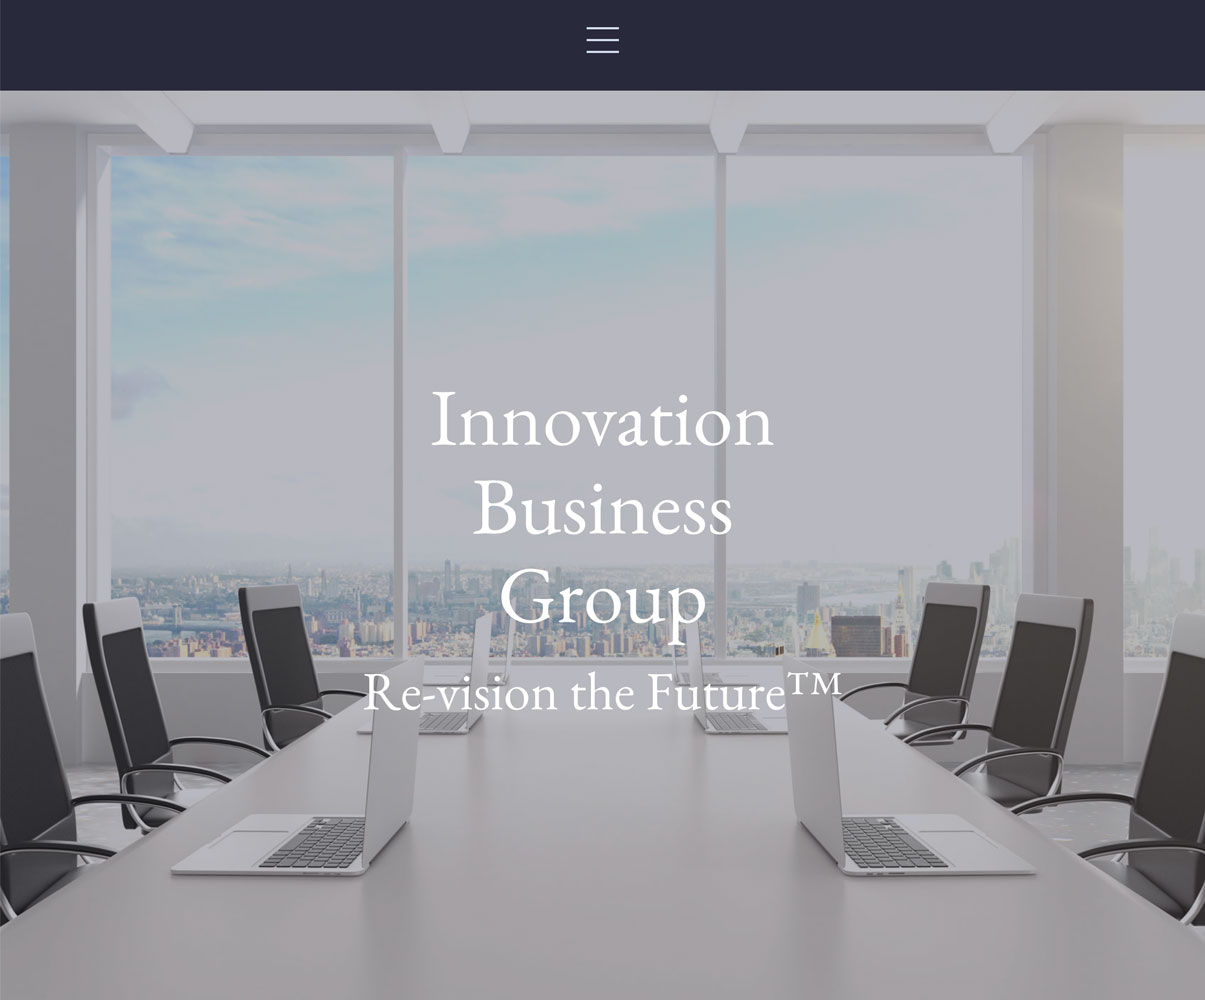 New Web Design: Innovation Business Group